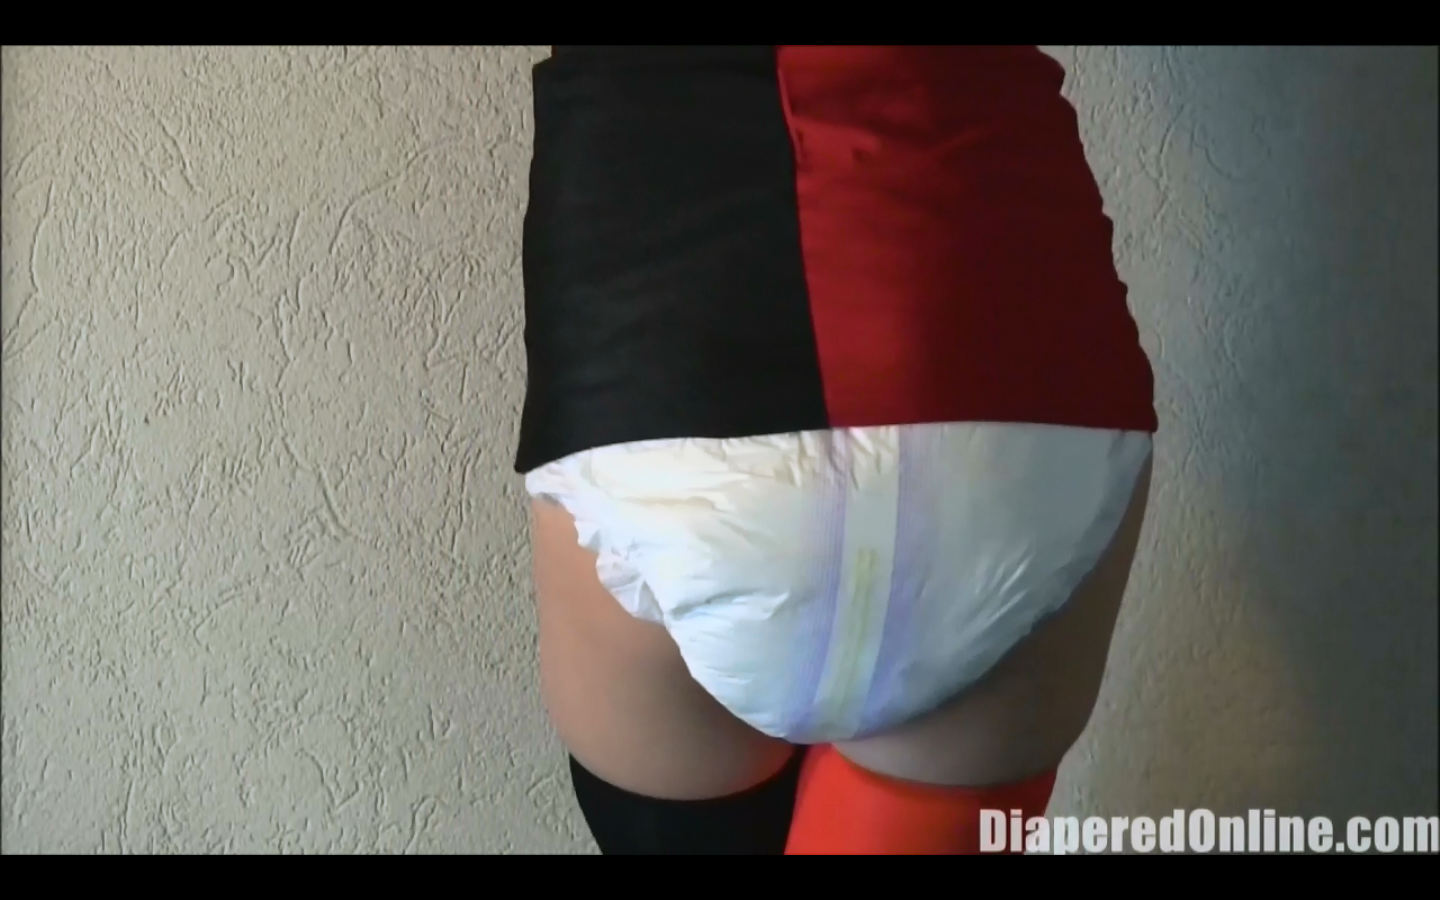 Teen Diaper Girl Messing